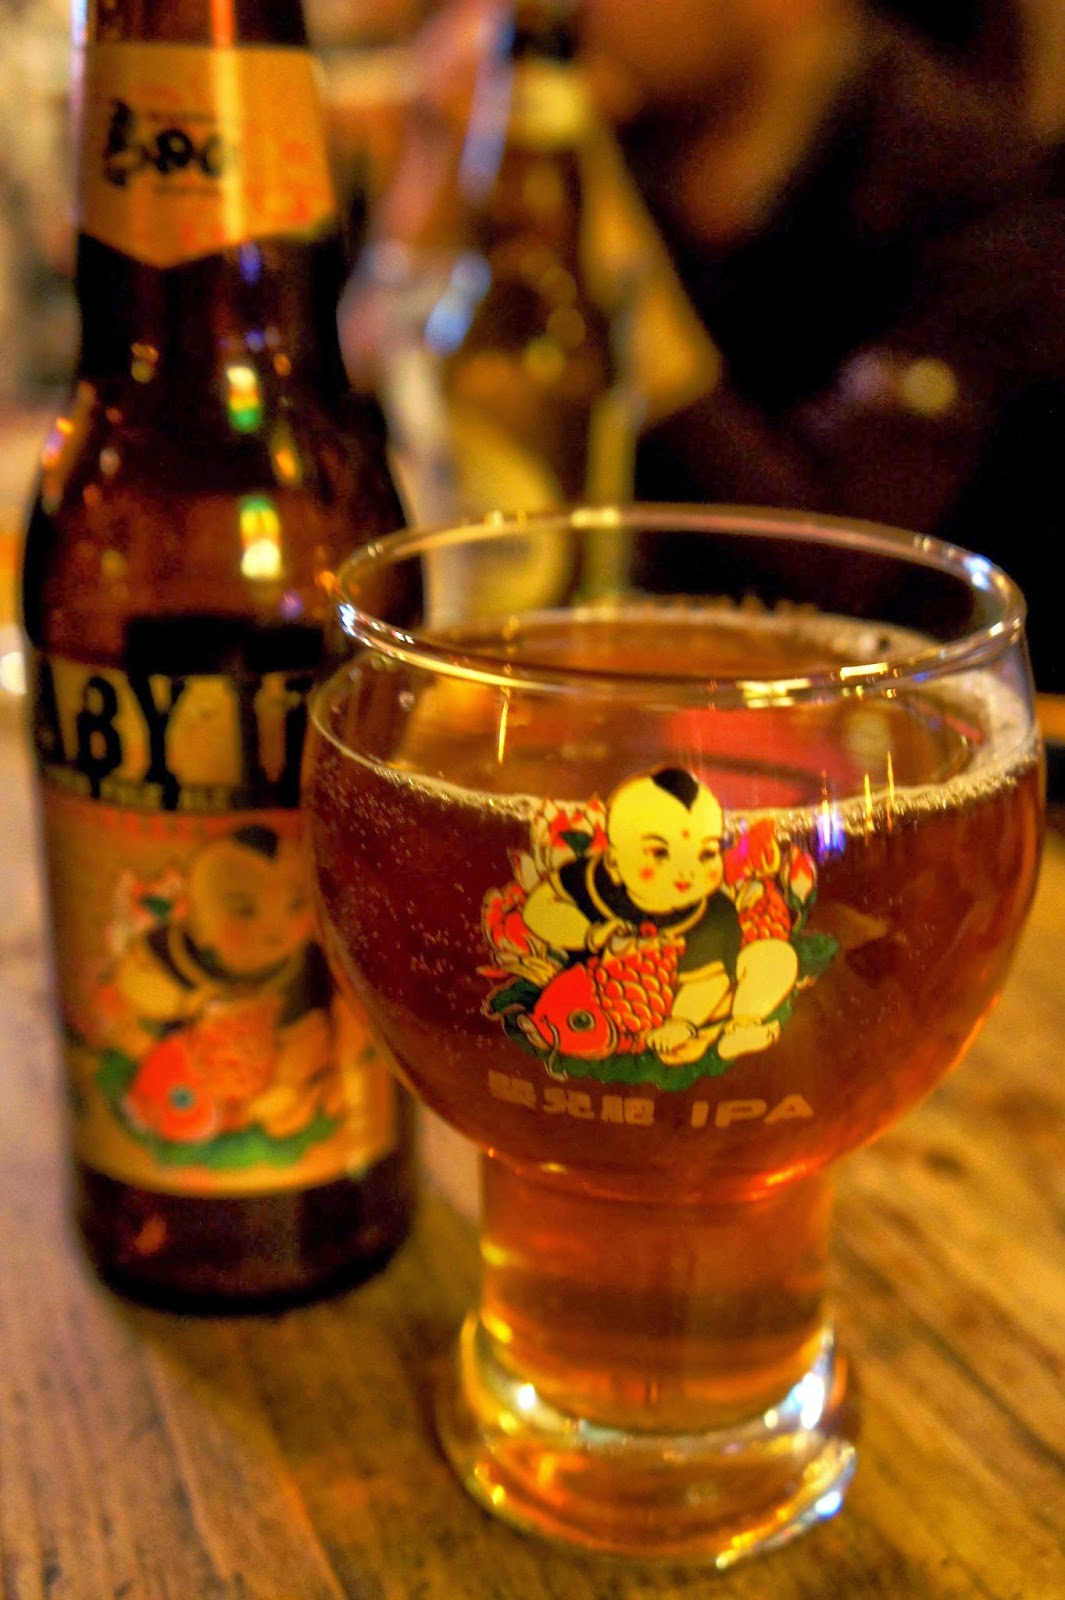 Baby IPA by Master Gao 31 Bar Beijing China